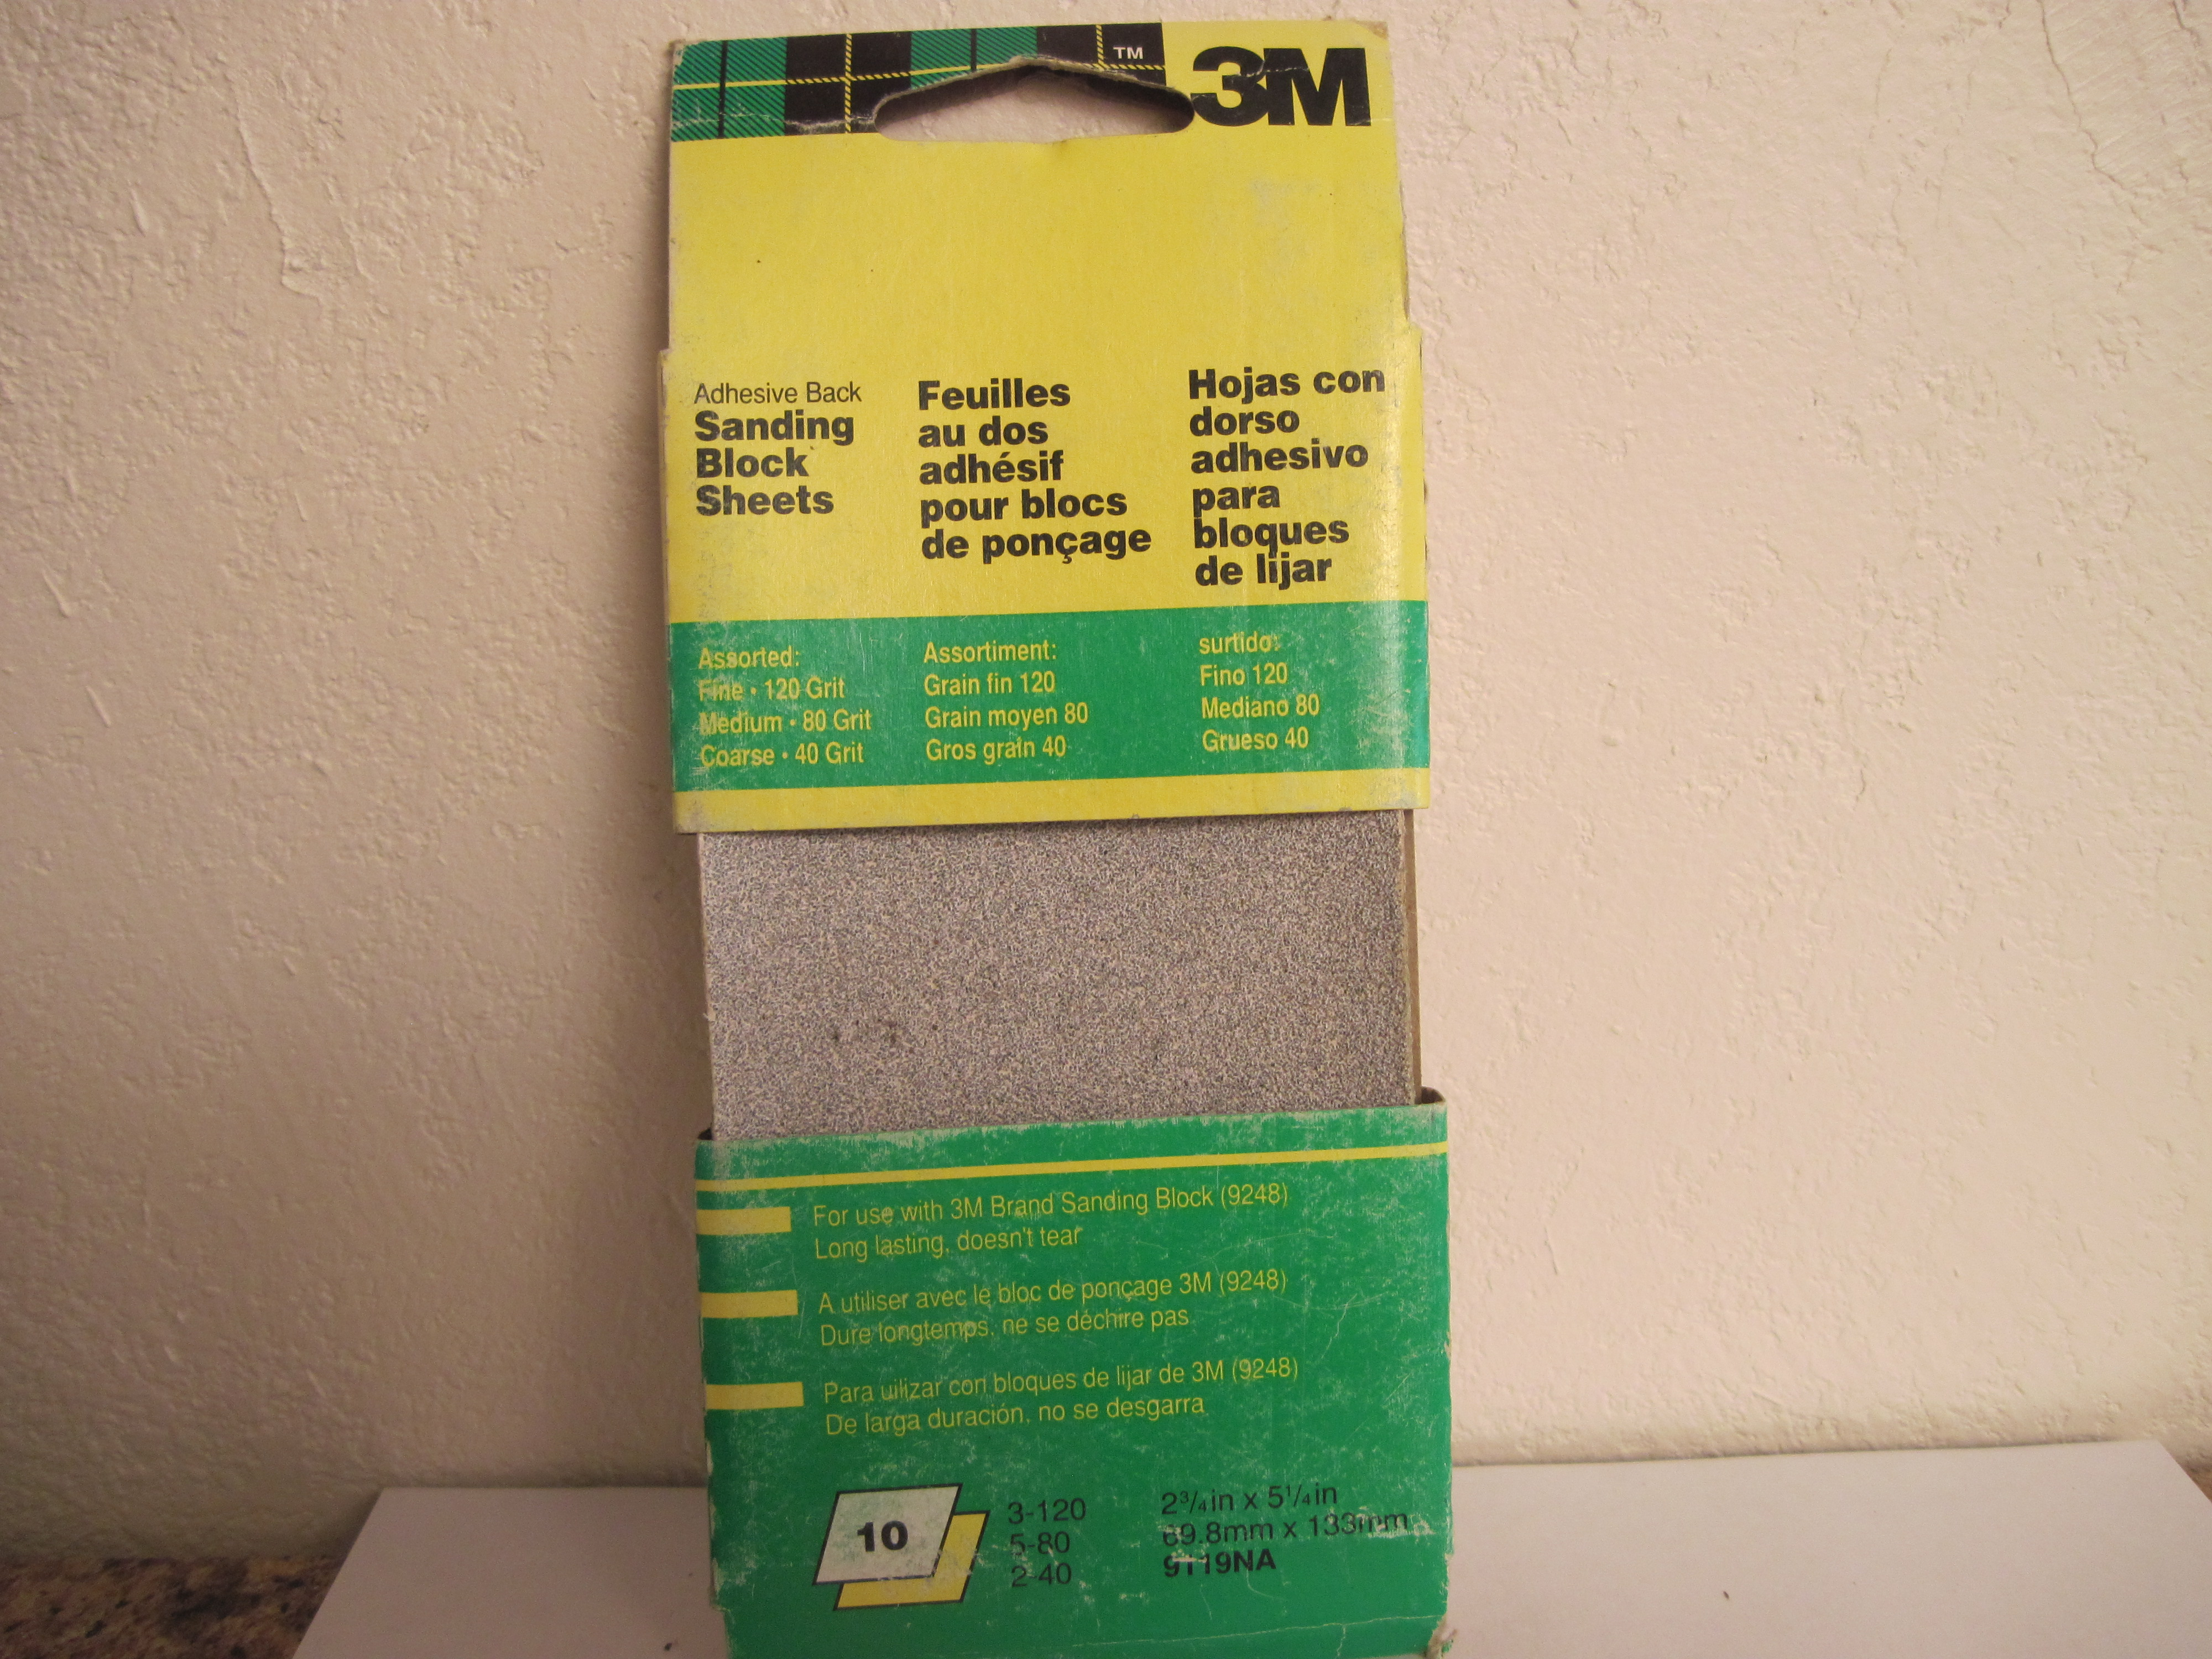 3M Adhesive Back Sanding Paper Block Sheets - 10 Assorted Sheets